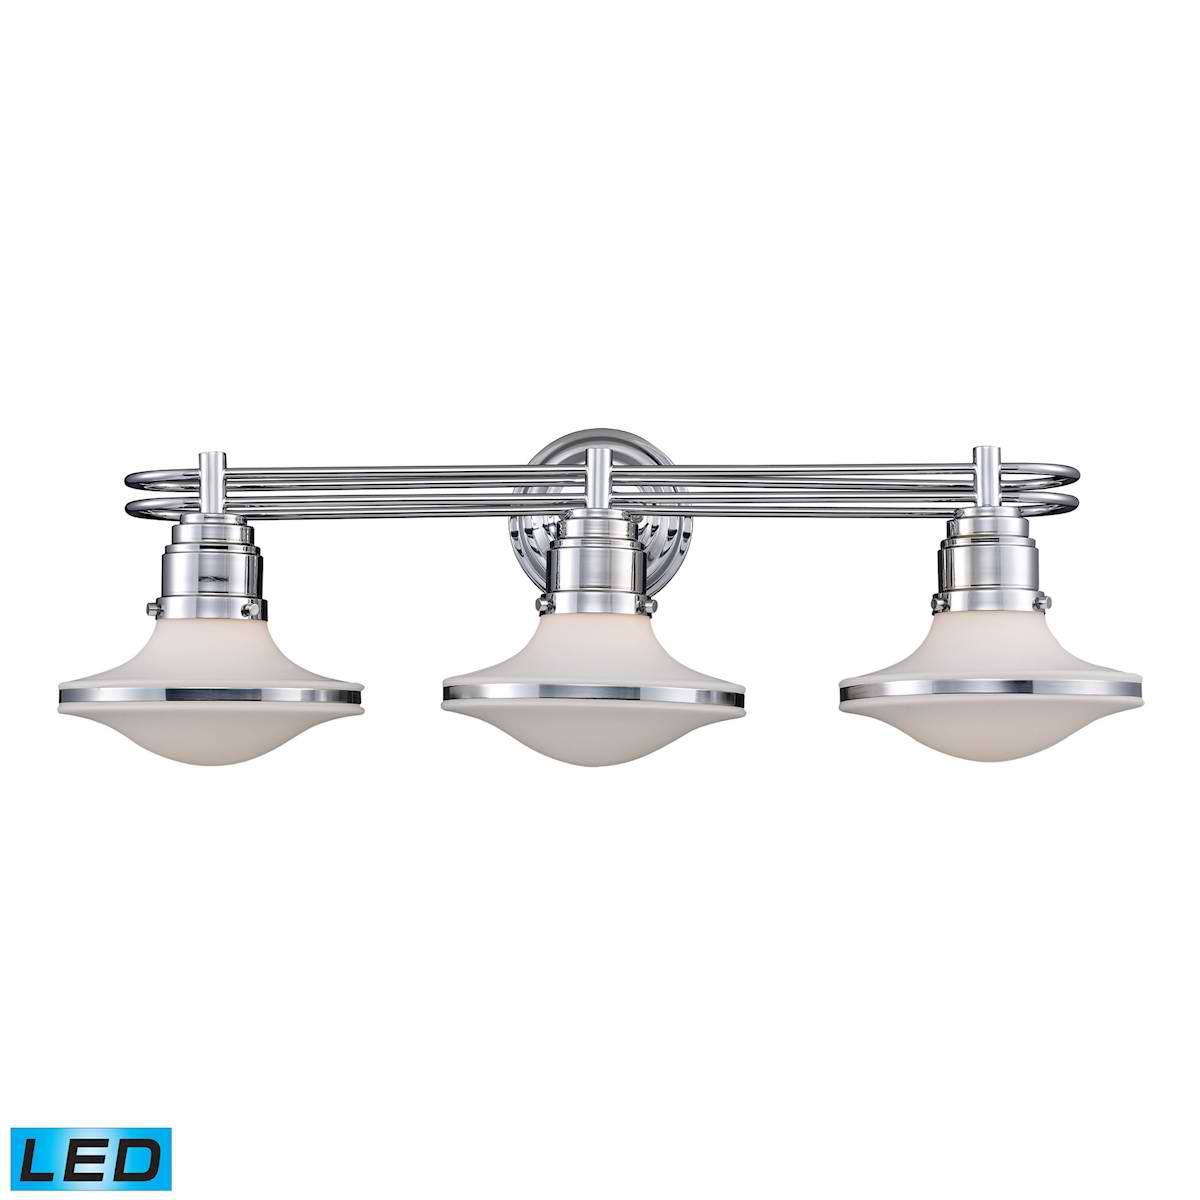 Retrospective 3-Light Bath Bar in Polished Chrome - LED, 800 Lumens (2400 Lumens Total) with Full Scale